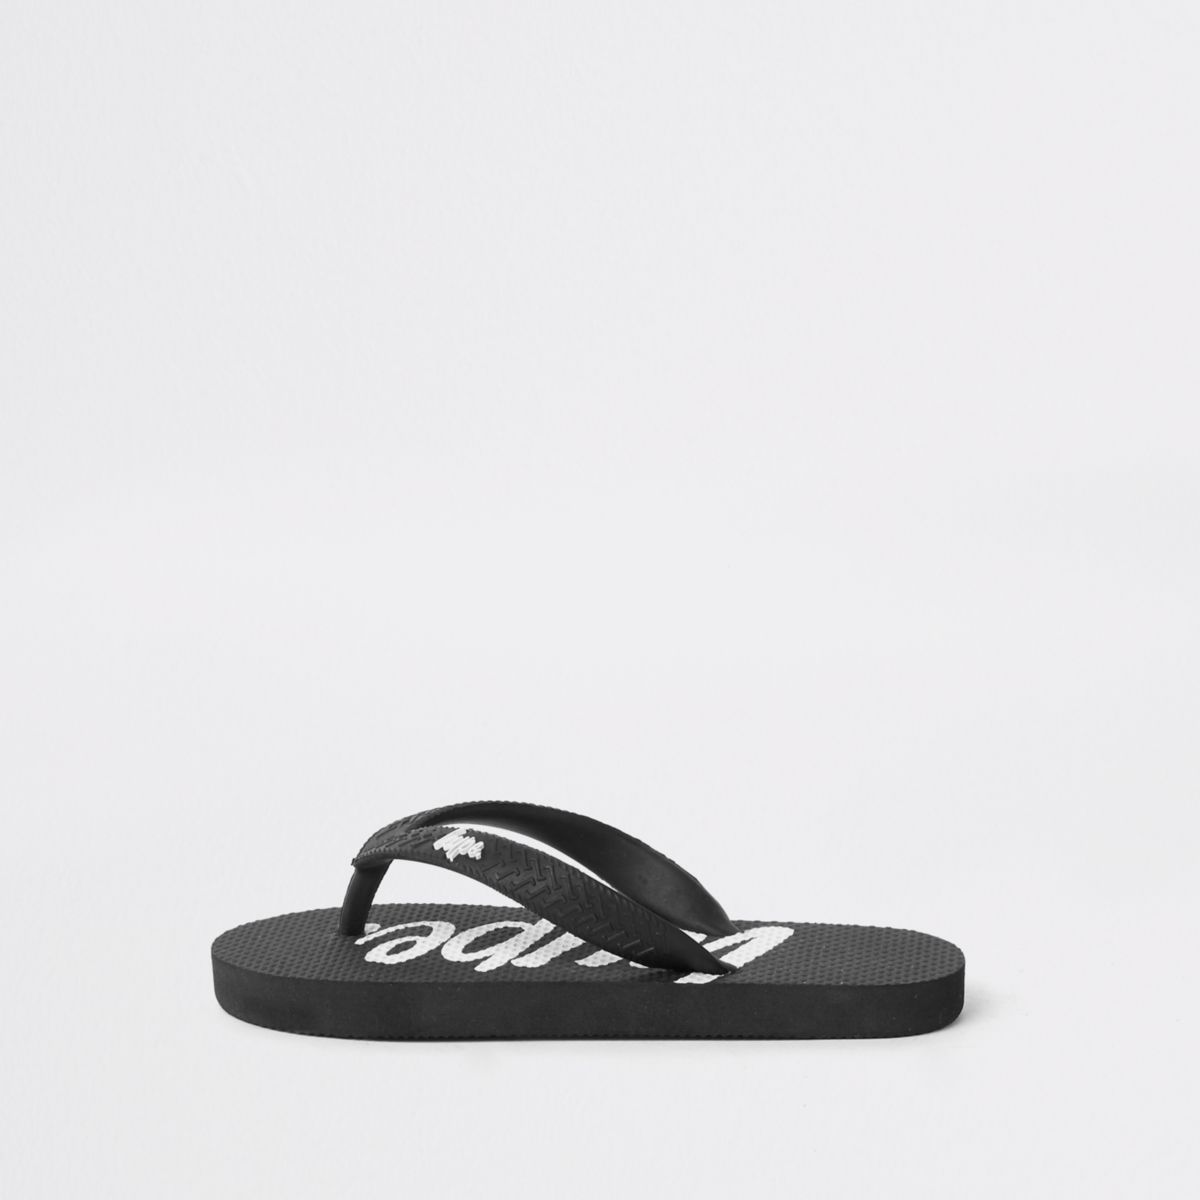 Boys Hype black flip flops